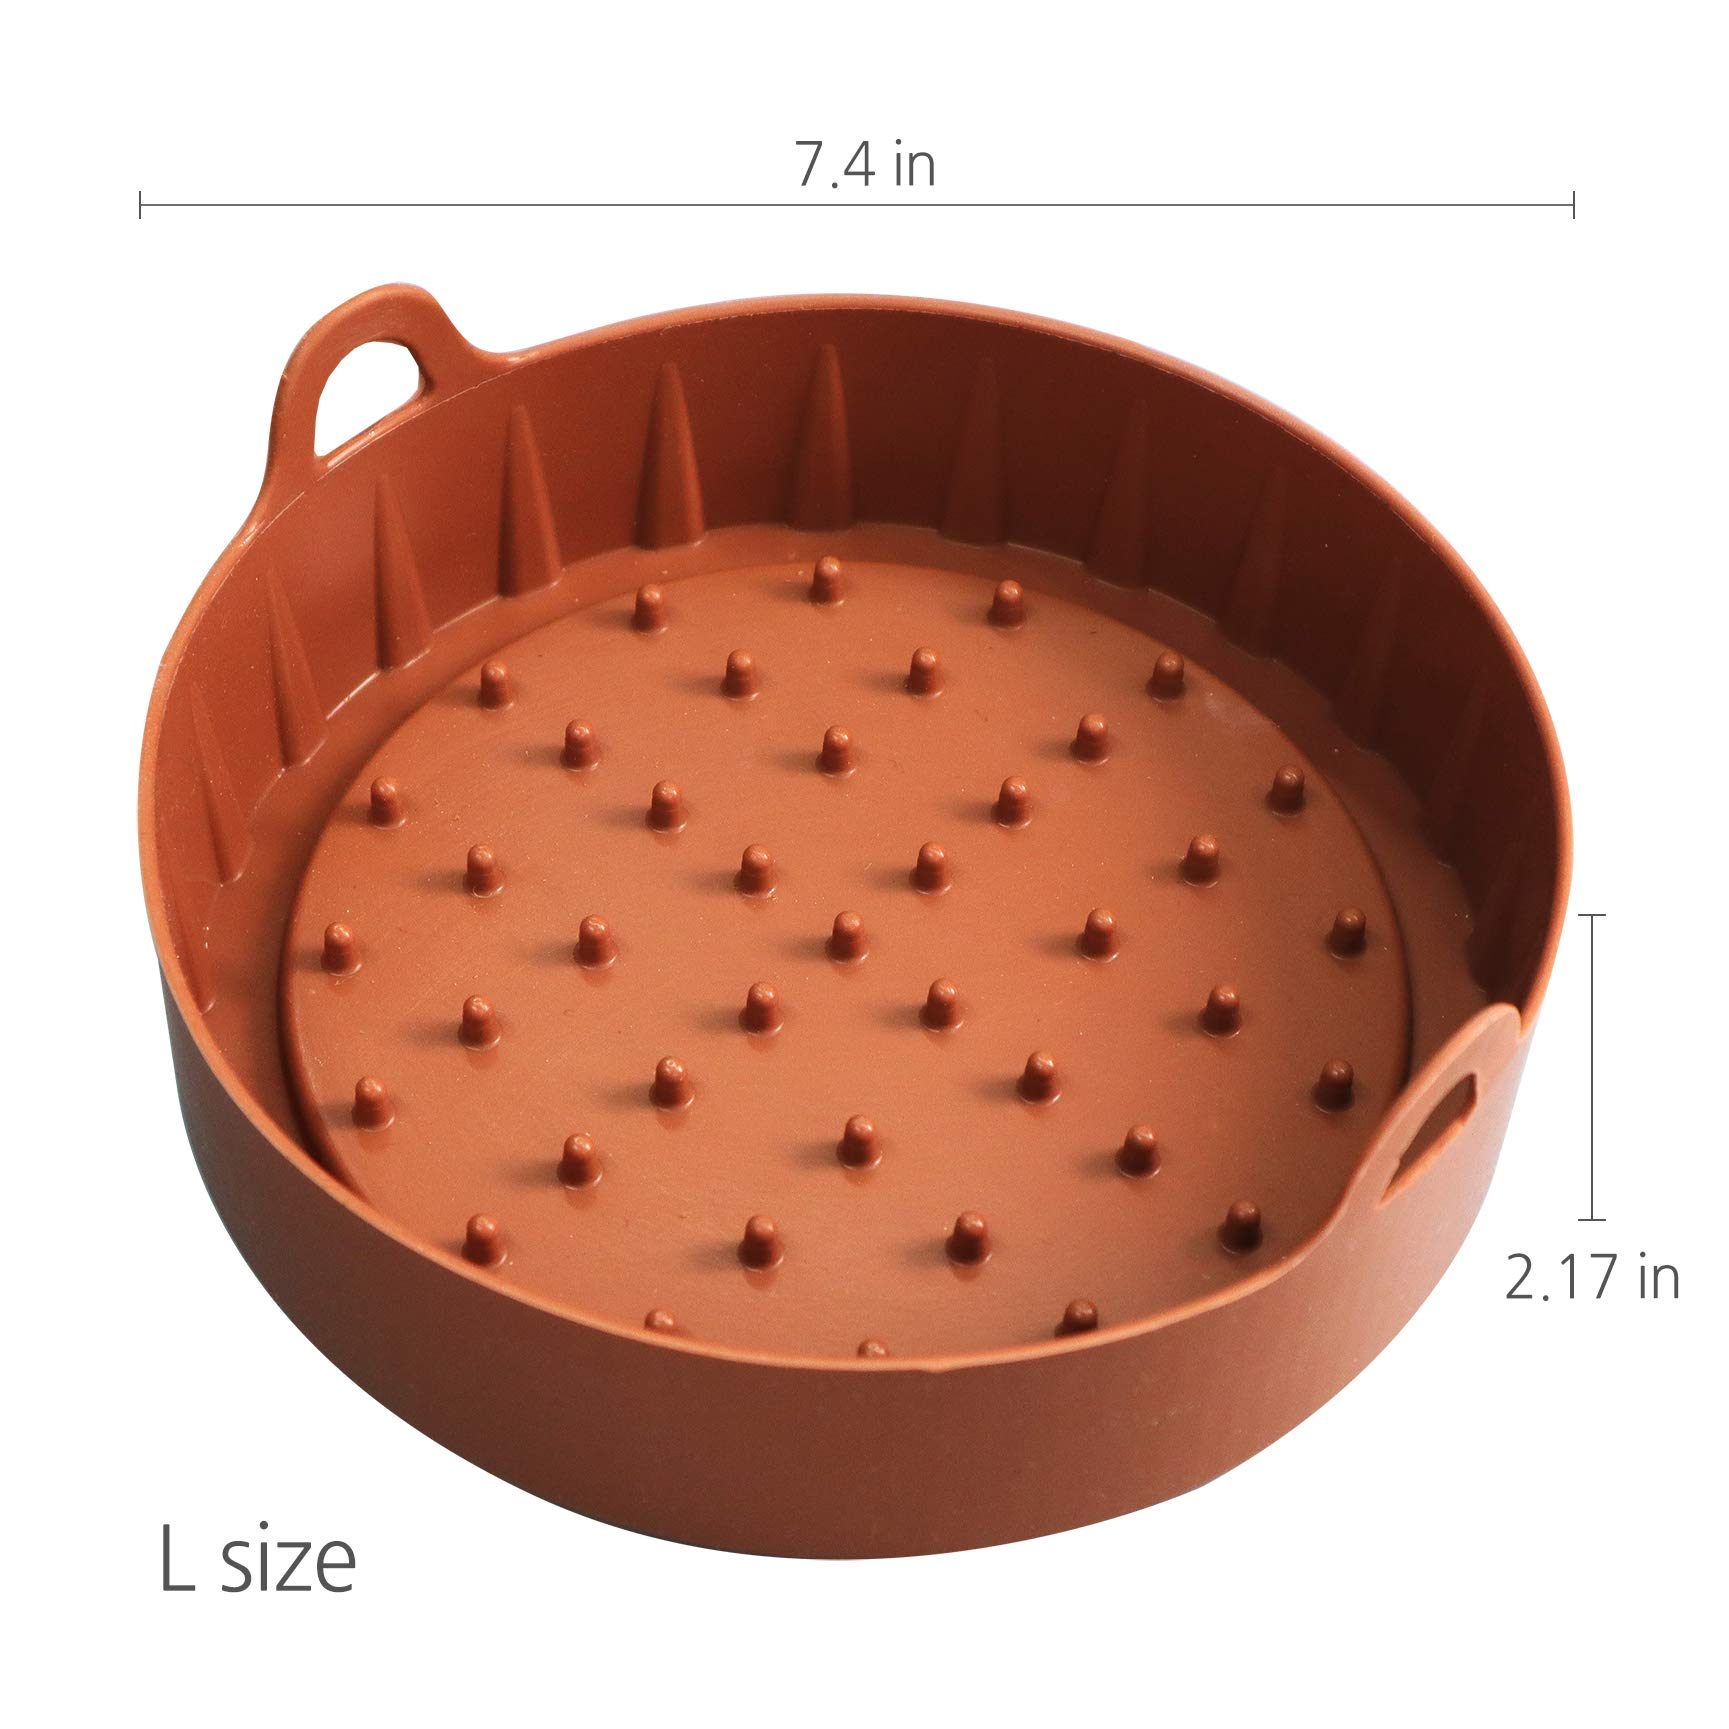 HAIM Living SILICONE TRAY for Air Fryer, Large - Premium Quality & Safe - Medical Grade Silicone - Non-Stick, User-Friendly - Dishwasher Safe & Heat Resistant - Healthy & Hygienic - Widely Compatible by HAIM Living